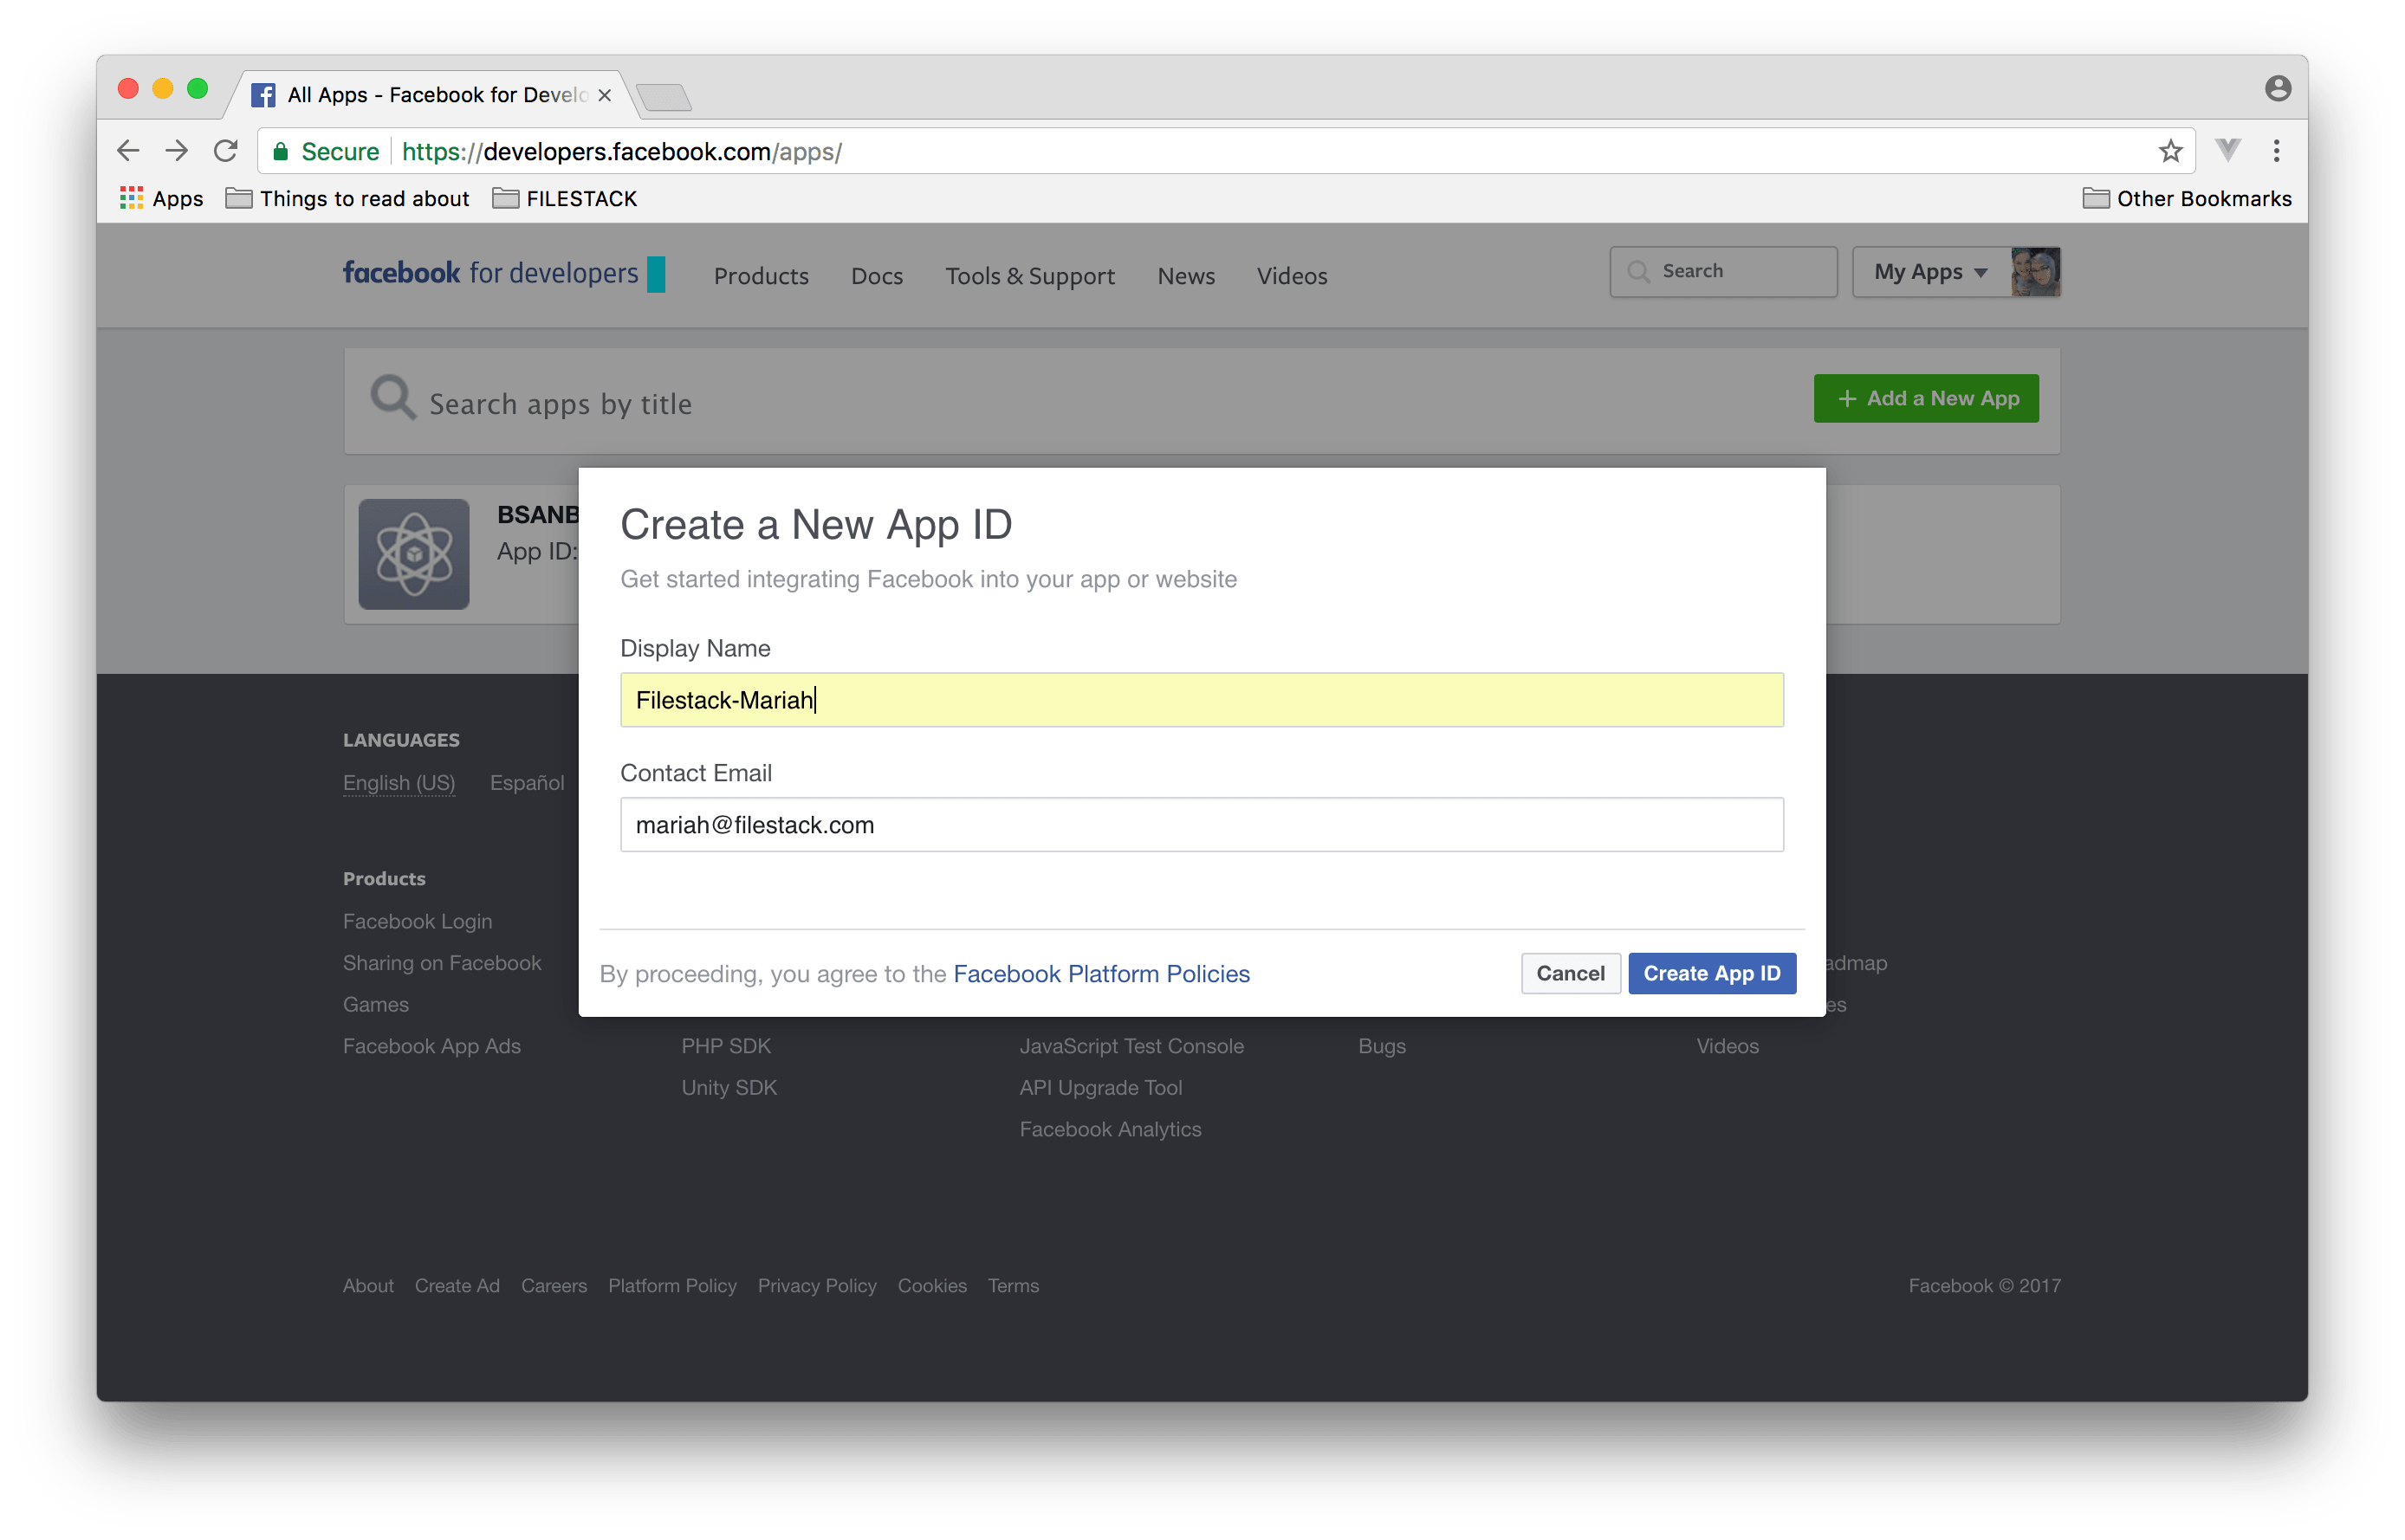 Screenshot showing Create a New App Id step in Facebook for Developers